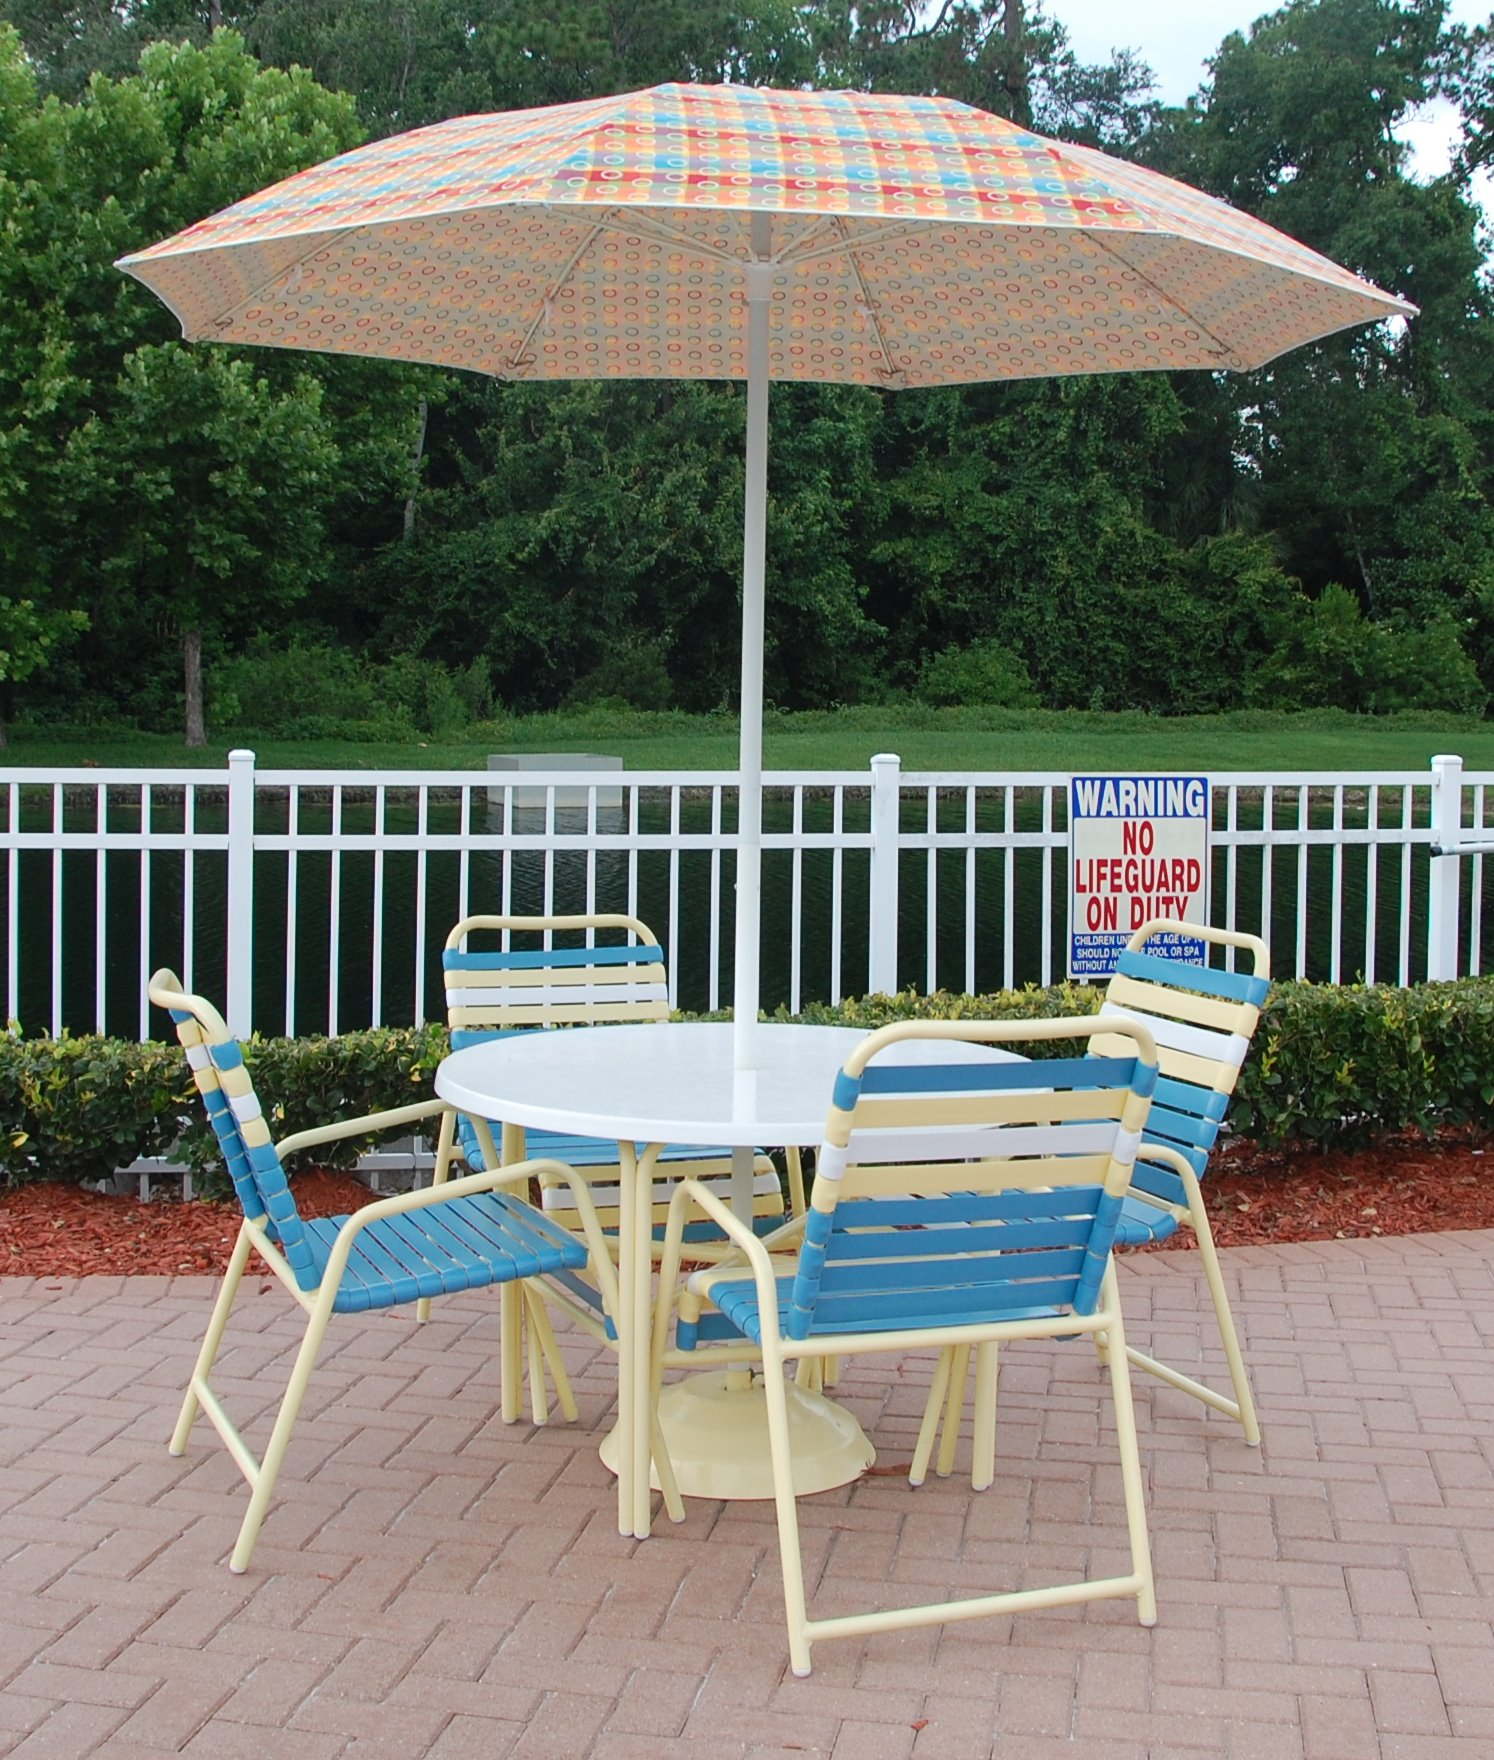 Country Club Aluminum Vinyl Strap Dining Chairs Most